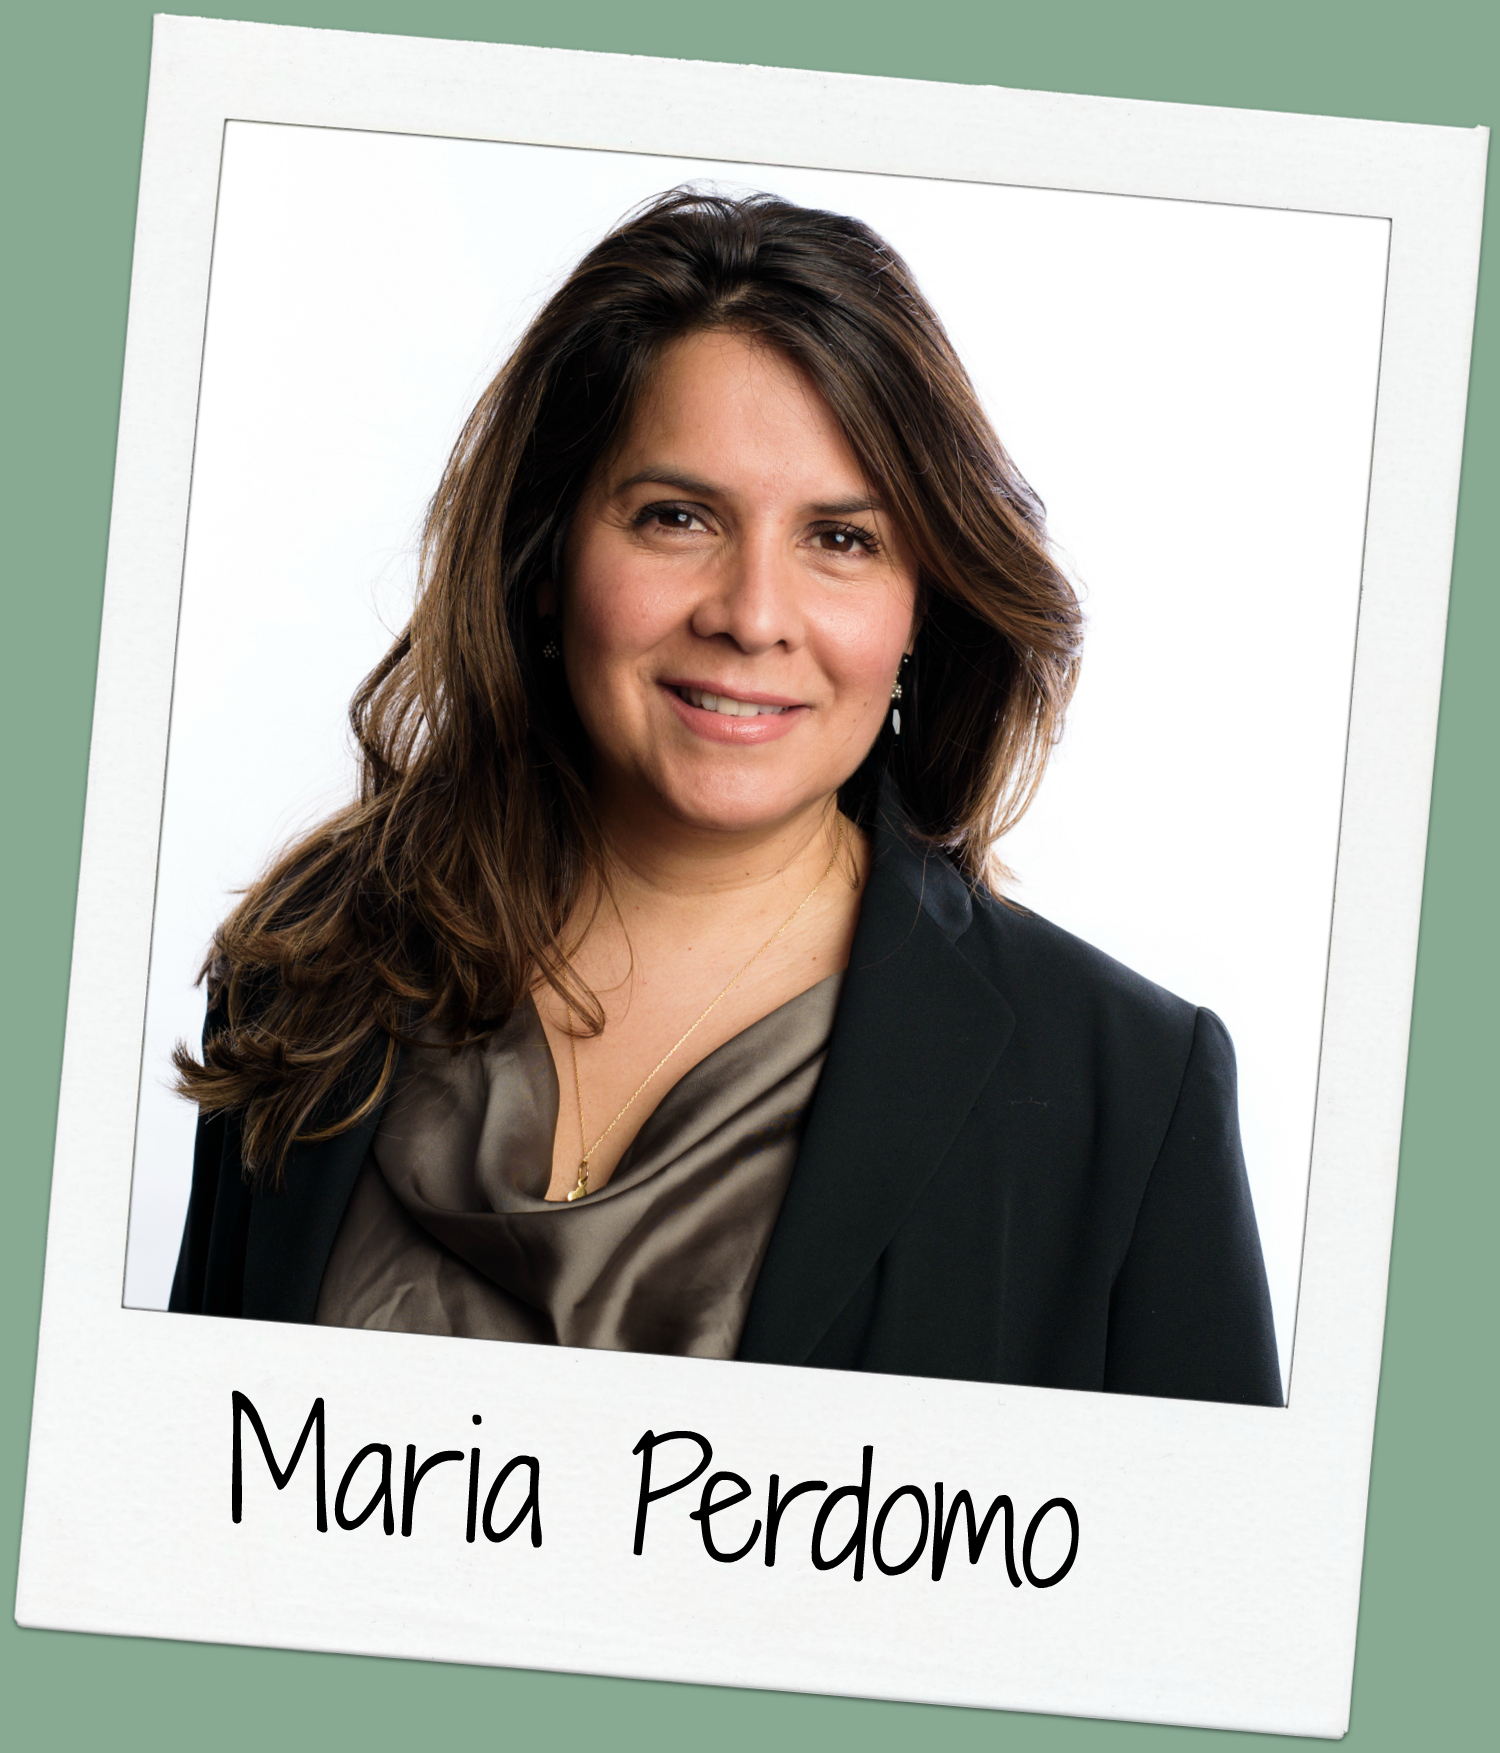 Maria took the lead initiating the global SBD partnership with greenlight for girls, as well as the advisory board. She is a D&I Champion, inspiring and connecting with the Women's network and budget owners across the globe. She has almost 20 years of service at SBD covering several leadership roles, has been a key note speaker at Brussels Day in 2017 and Global Point of contact for 2 years. Through her leadership, our our collaboration has grown and continues to develop!